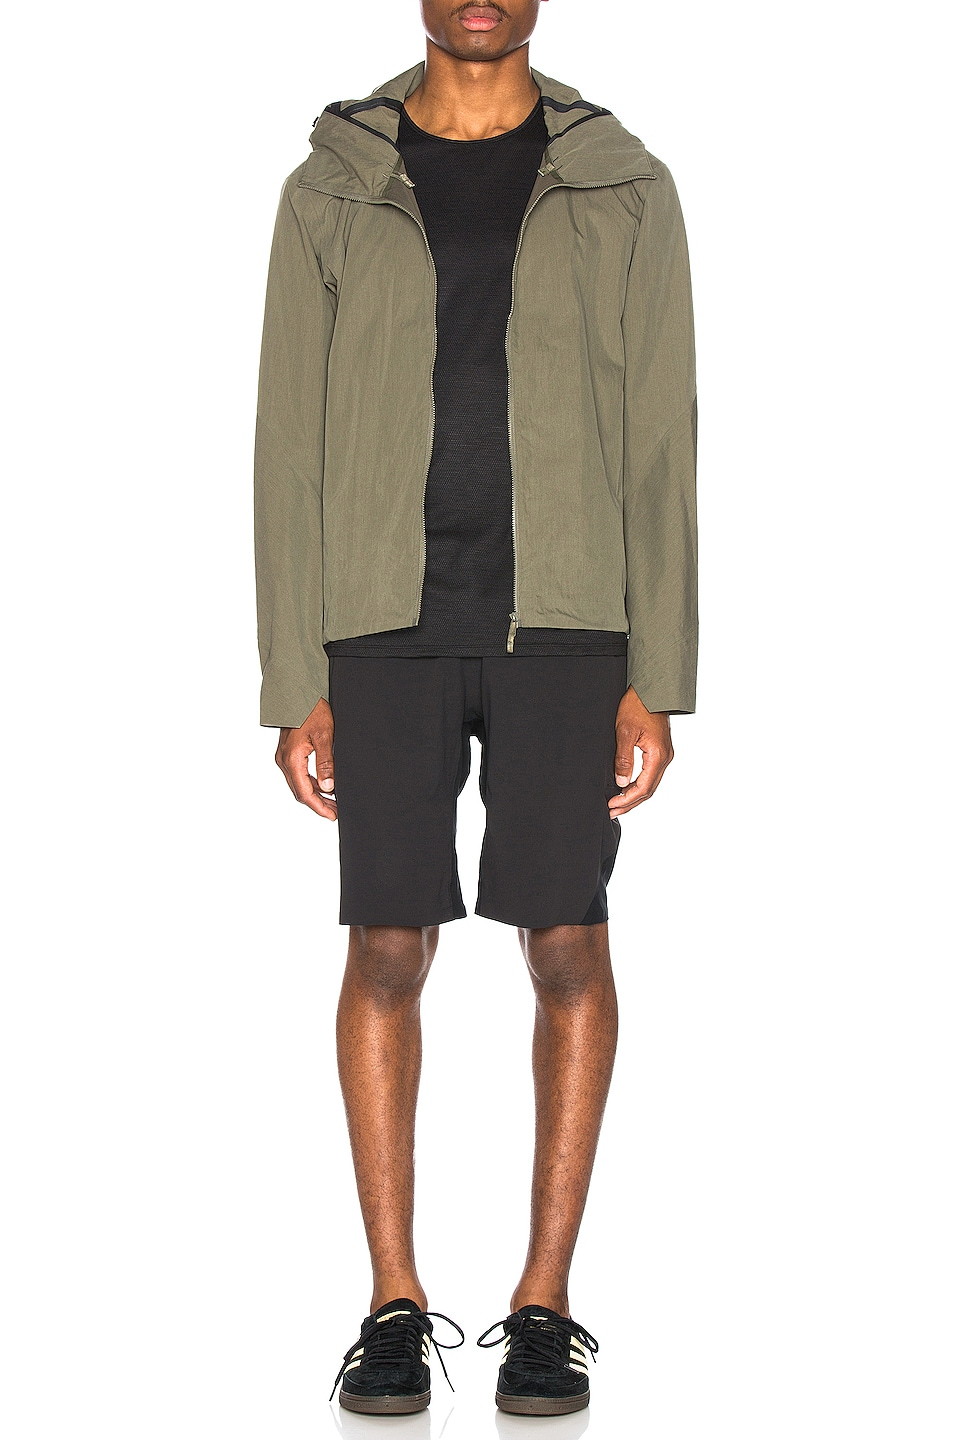 Image 5 of Arc'teryx Veilance Isogon Jacket in Loden